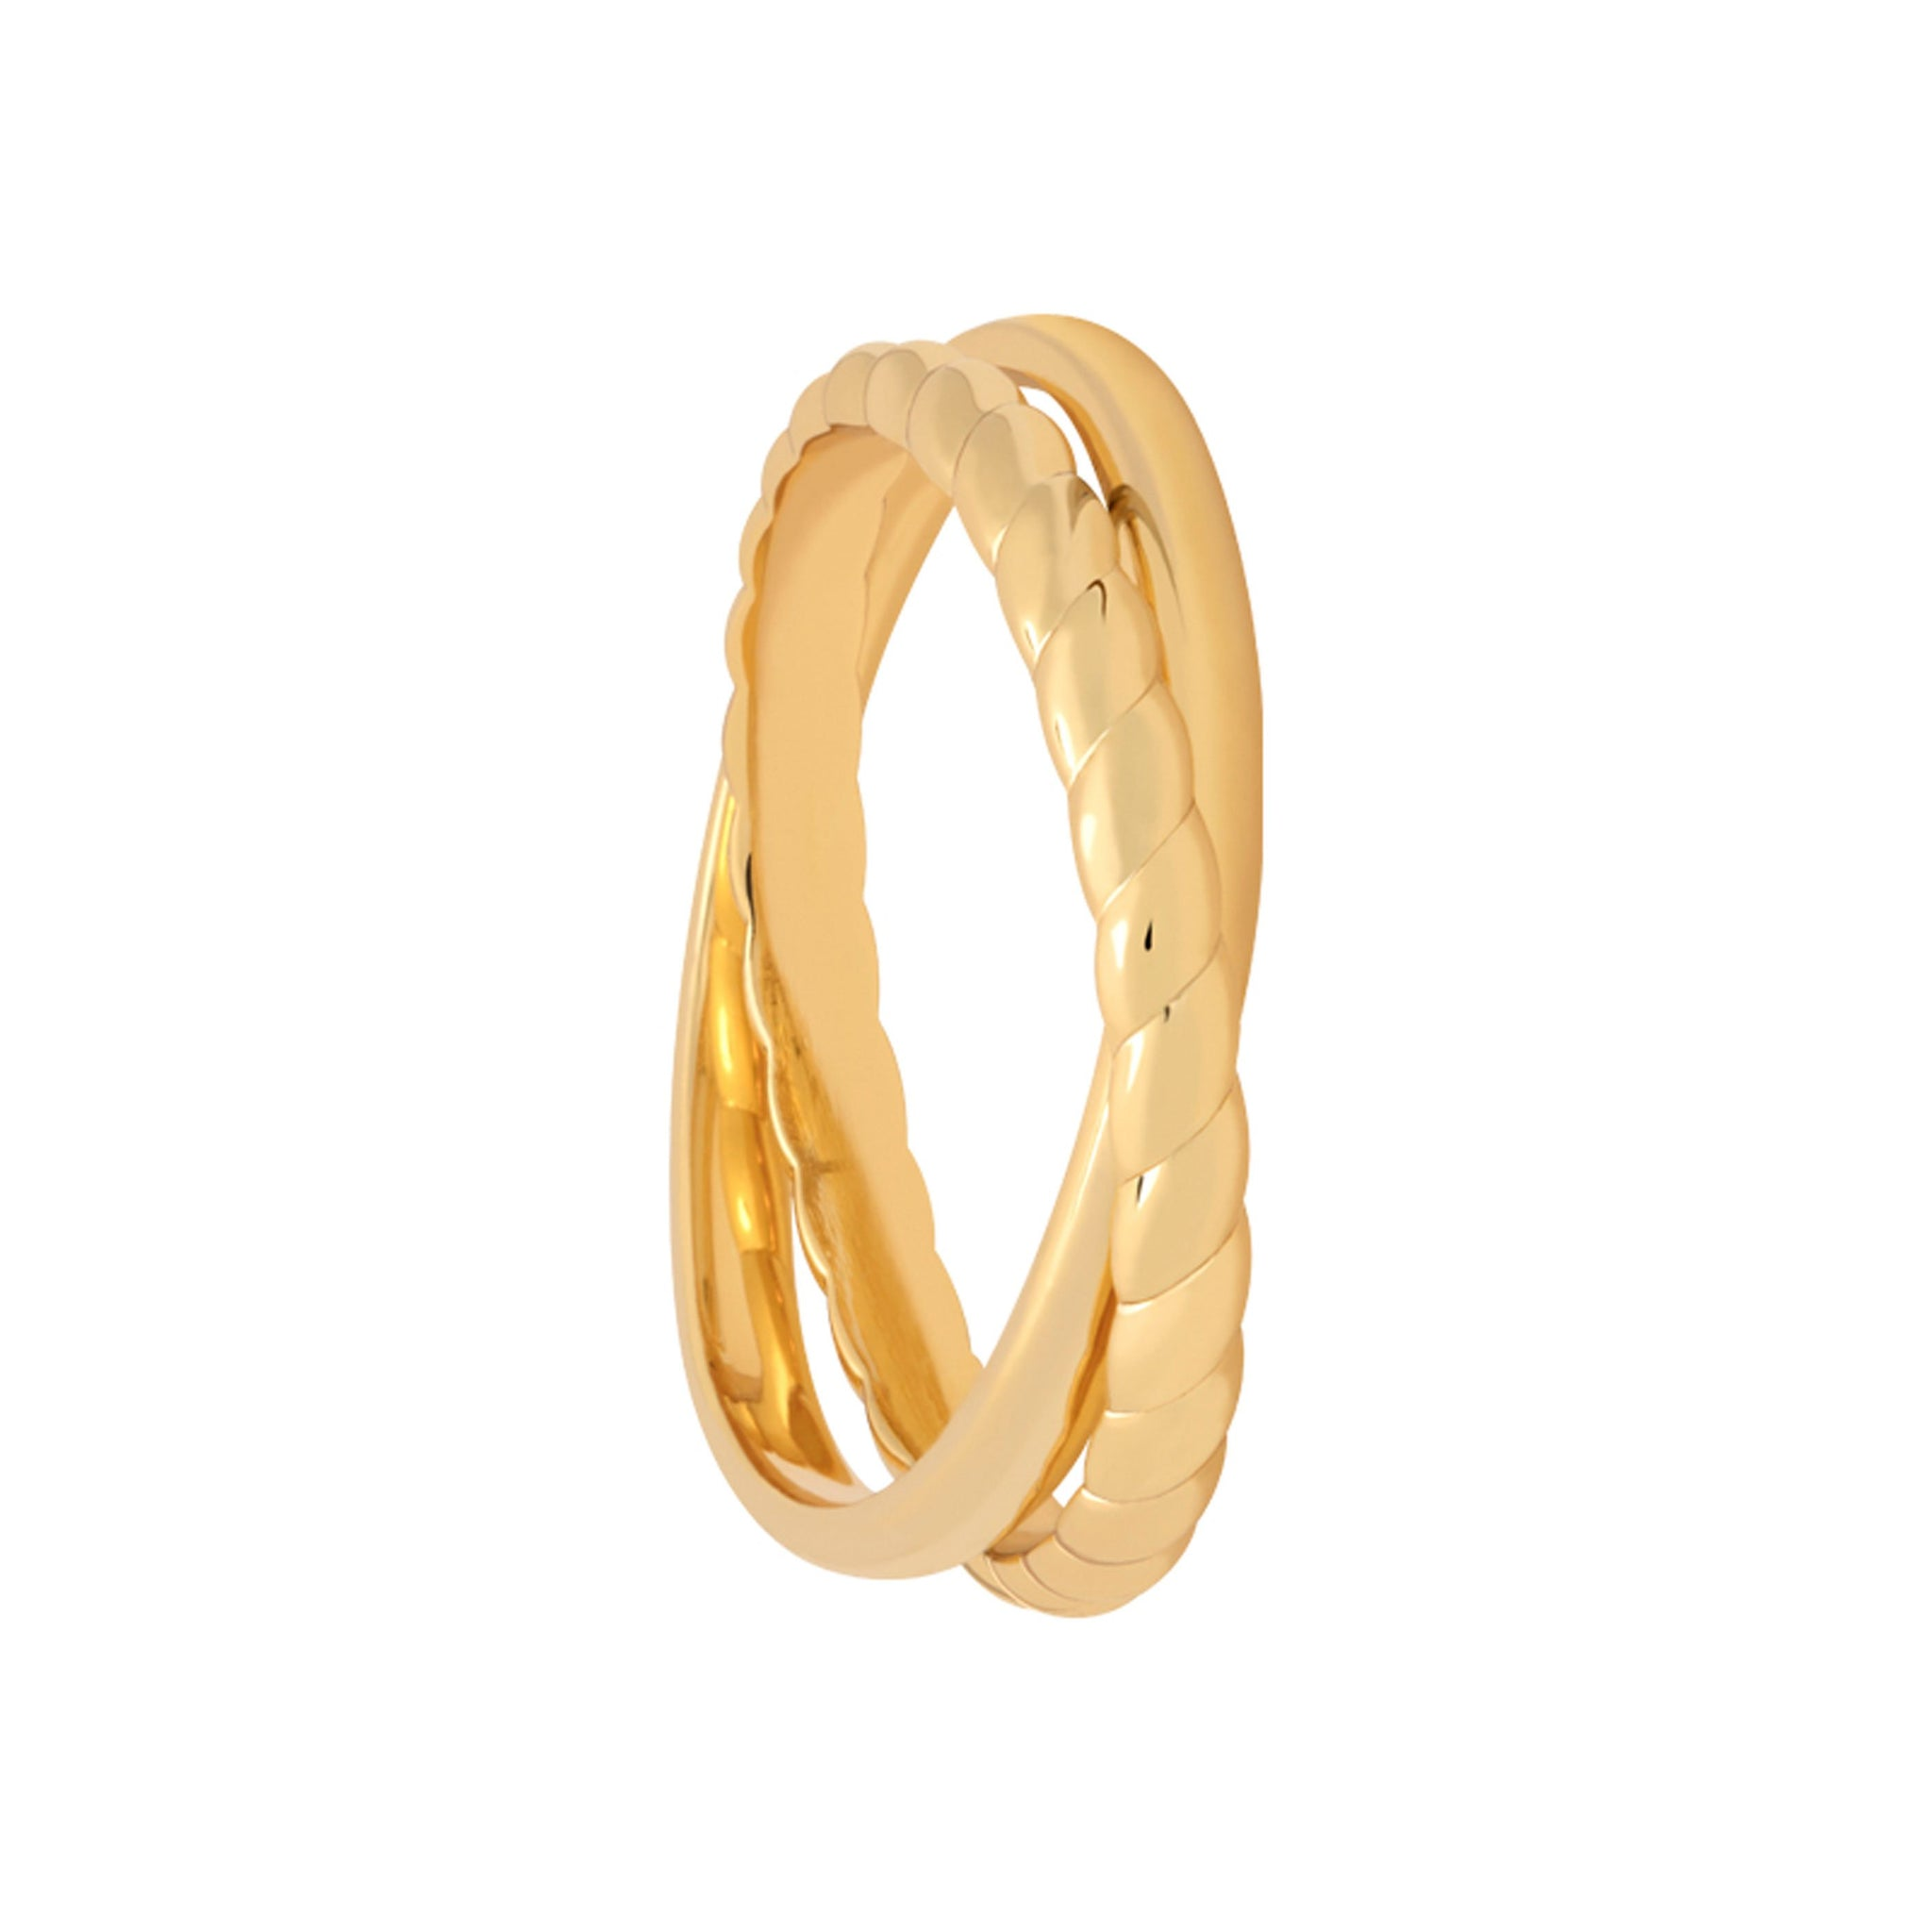 Interlocked Rope & Plain Band Ring in Gold